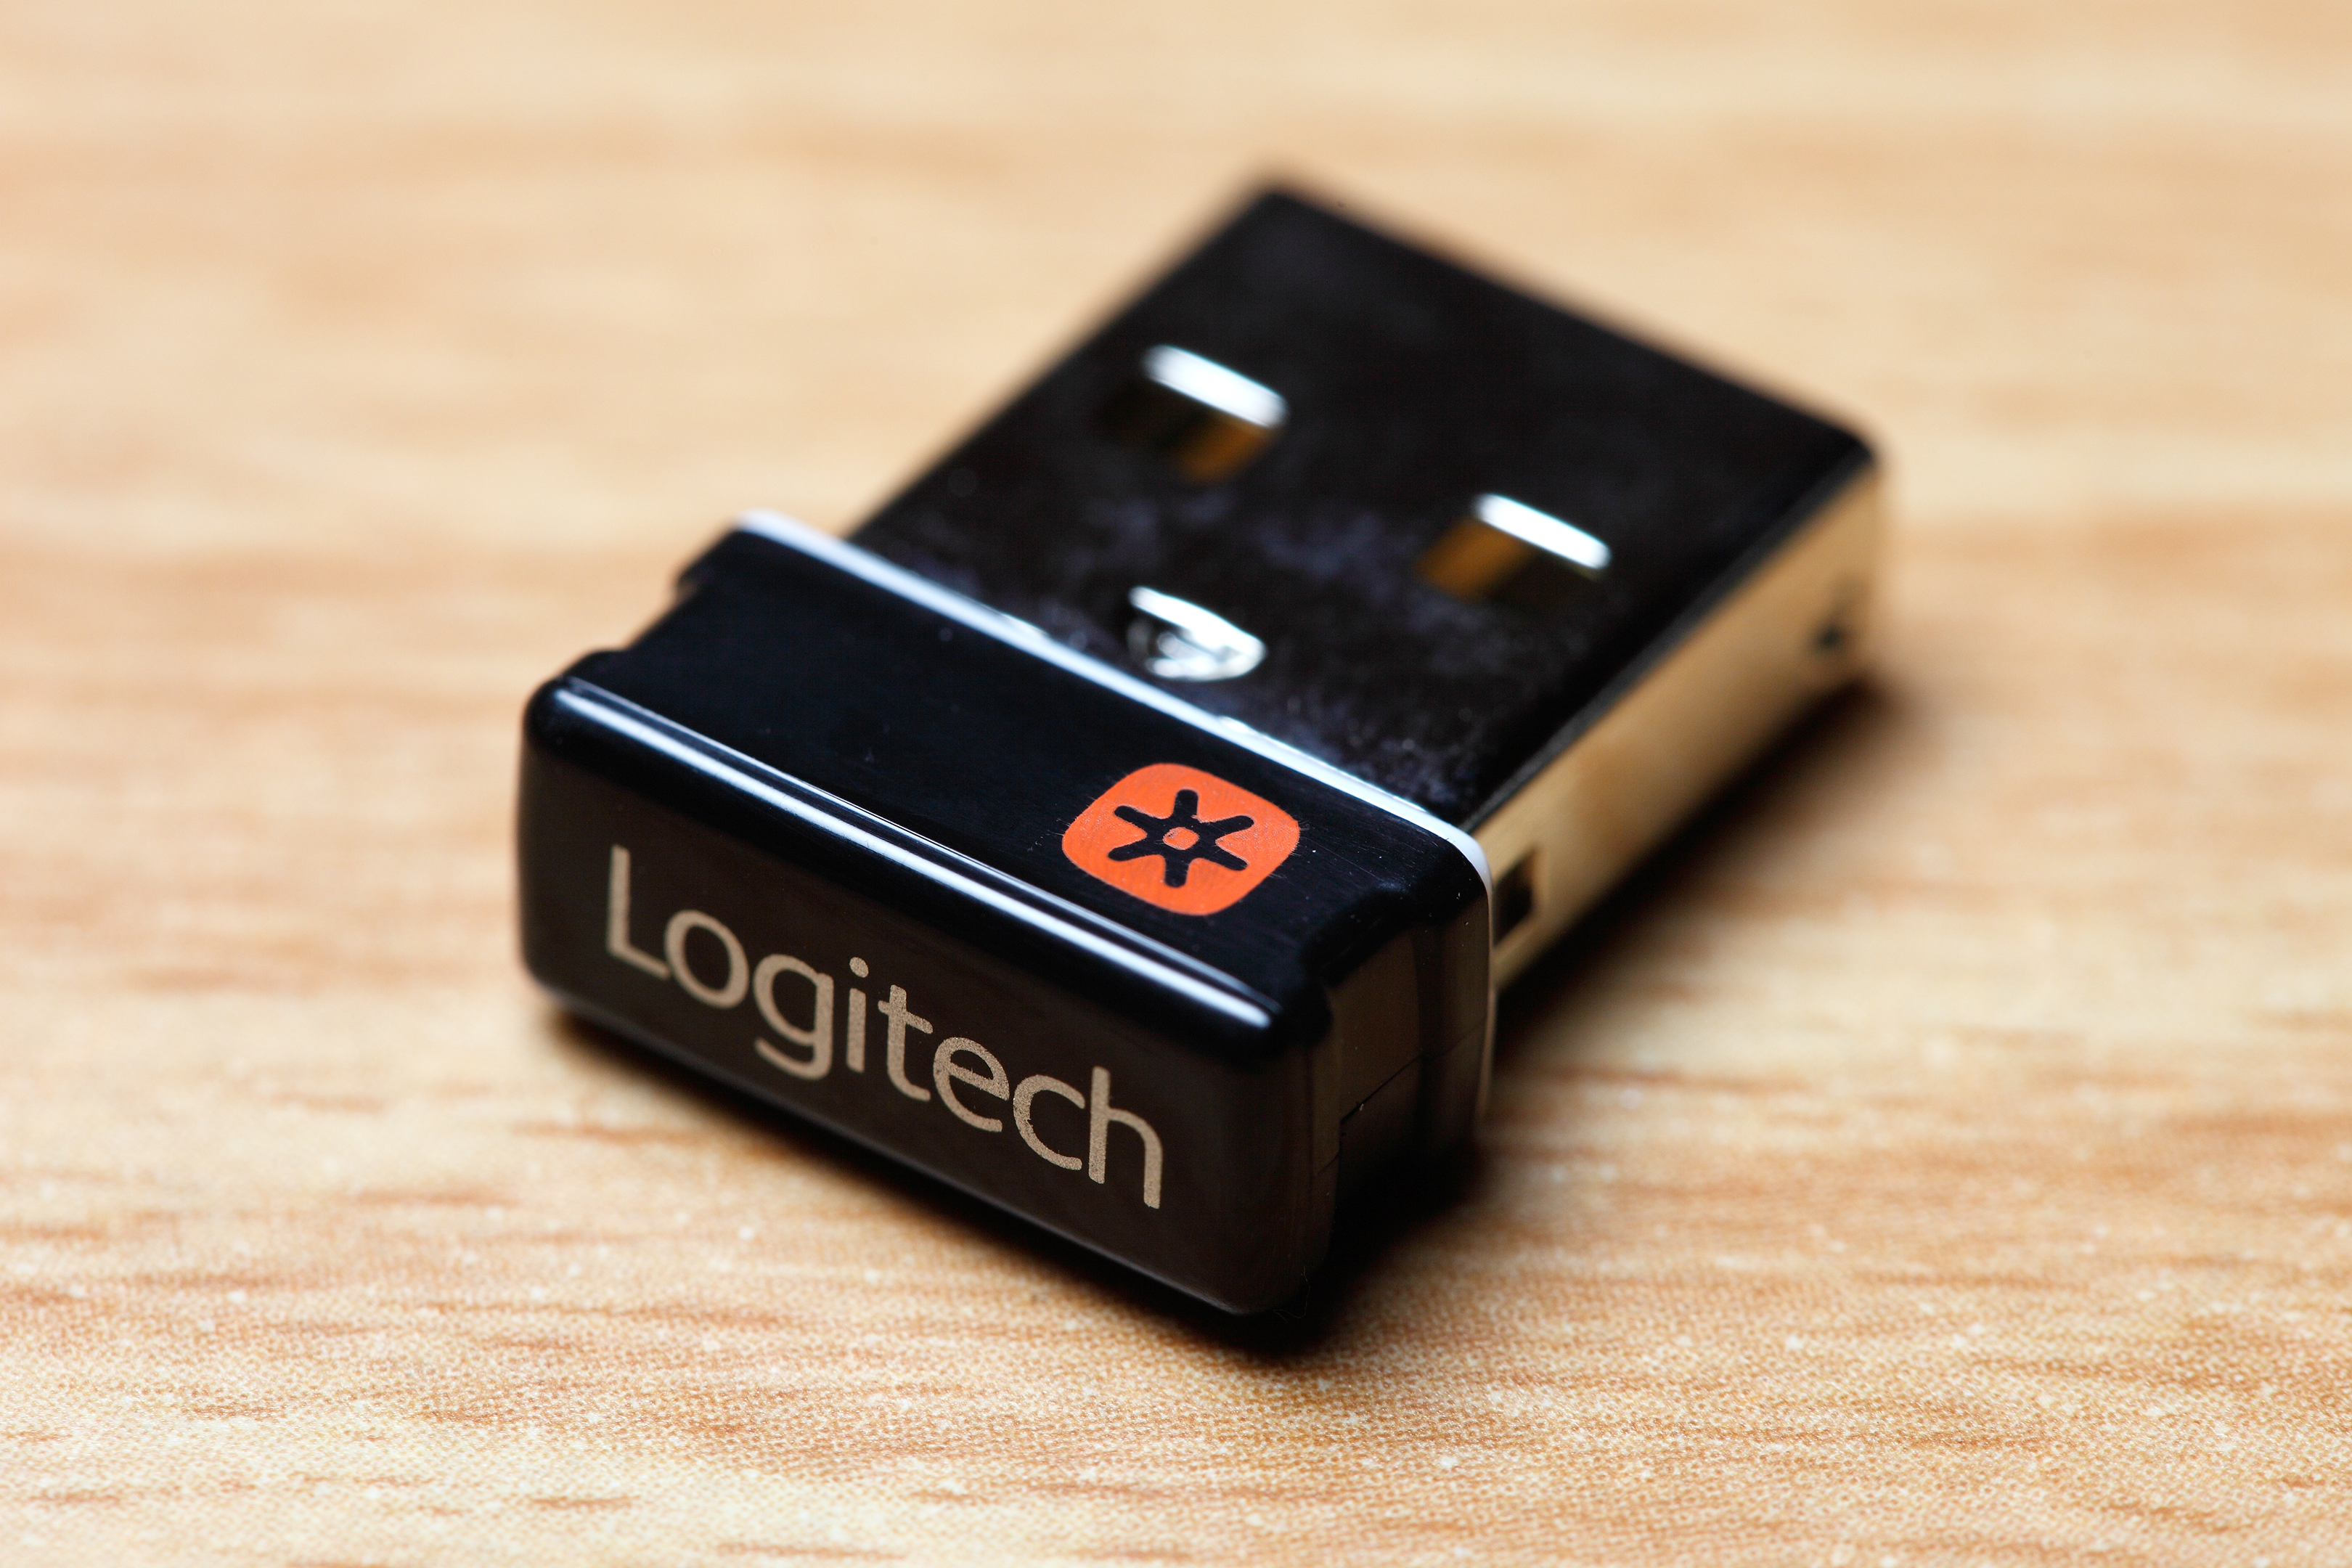 252abddf2ae Logitech Unifying receiver - Wikipedia